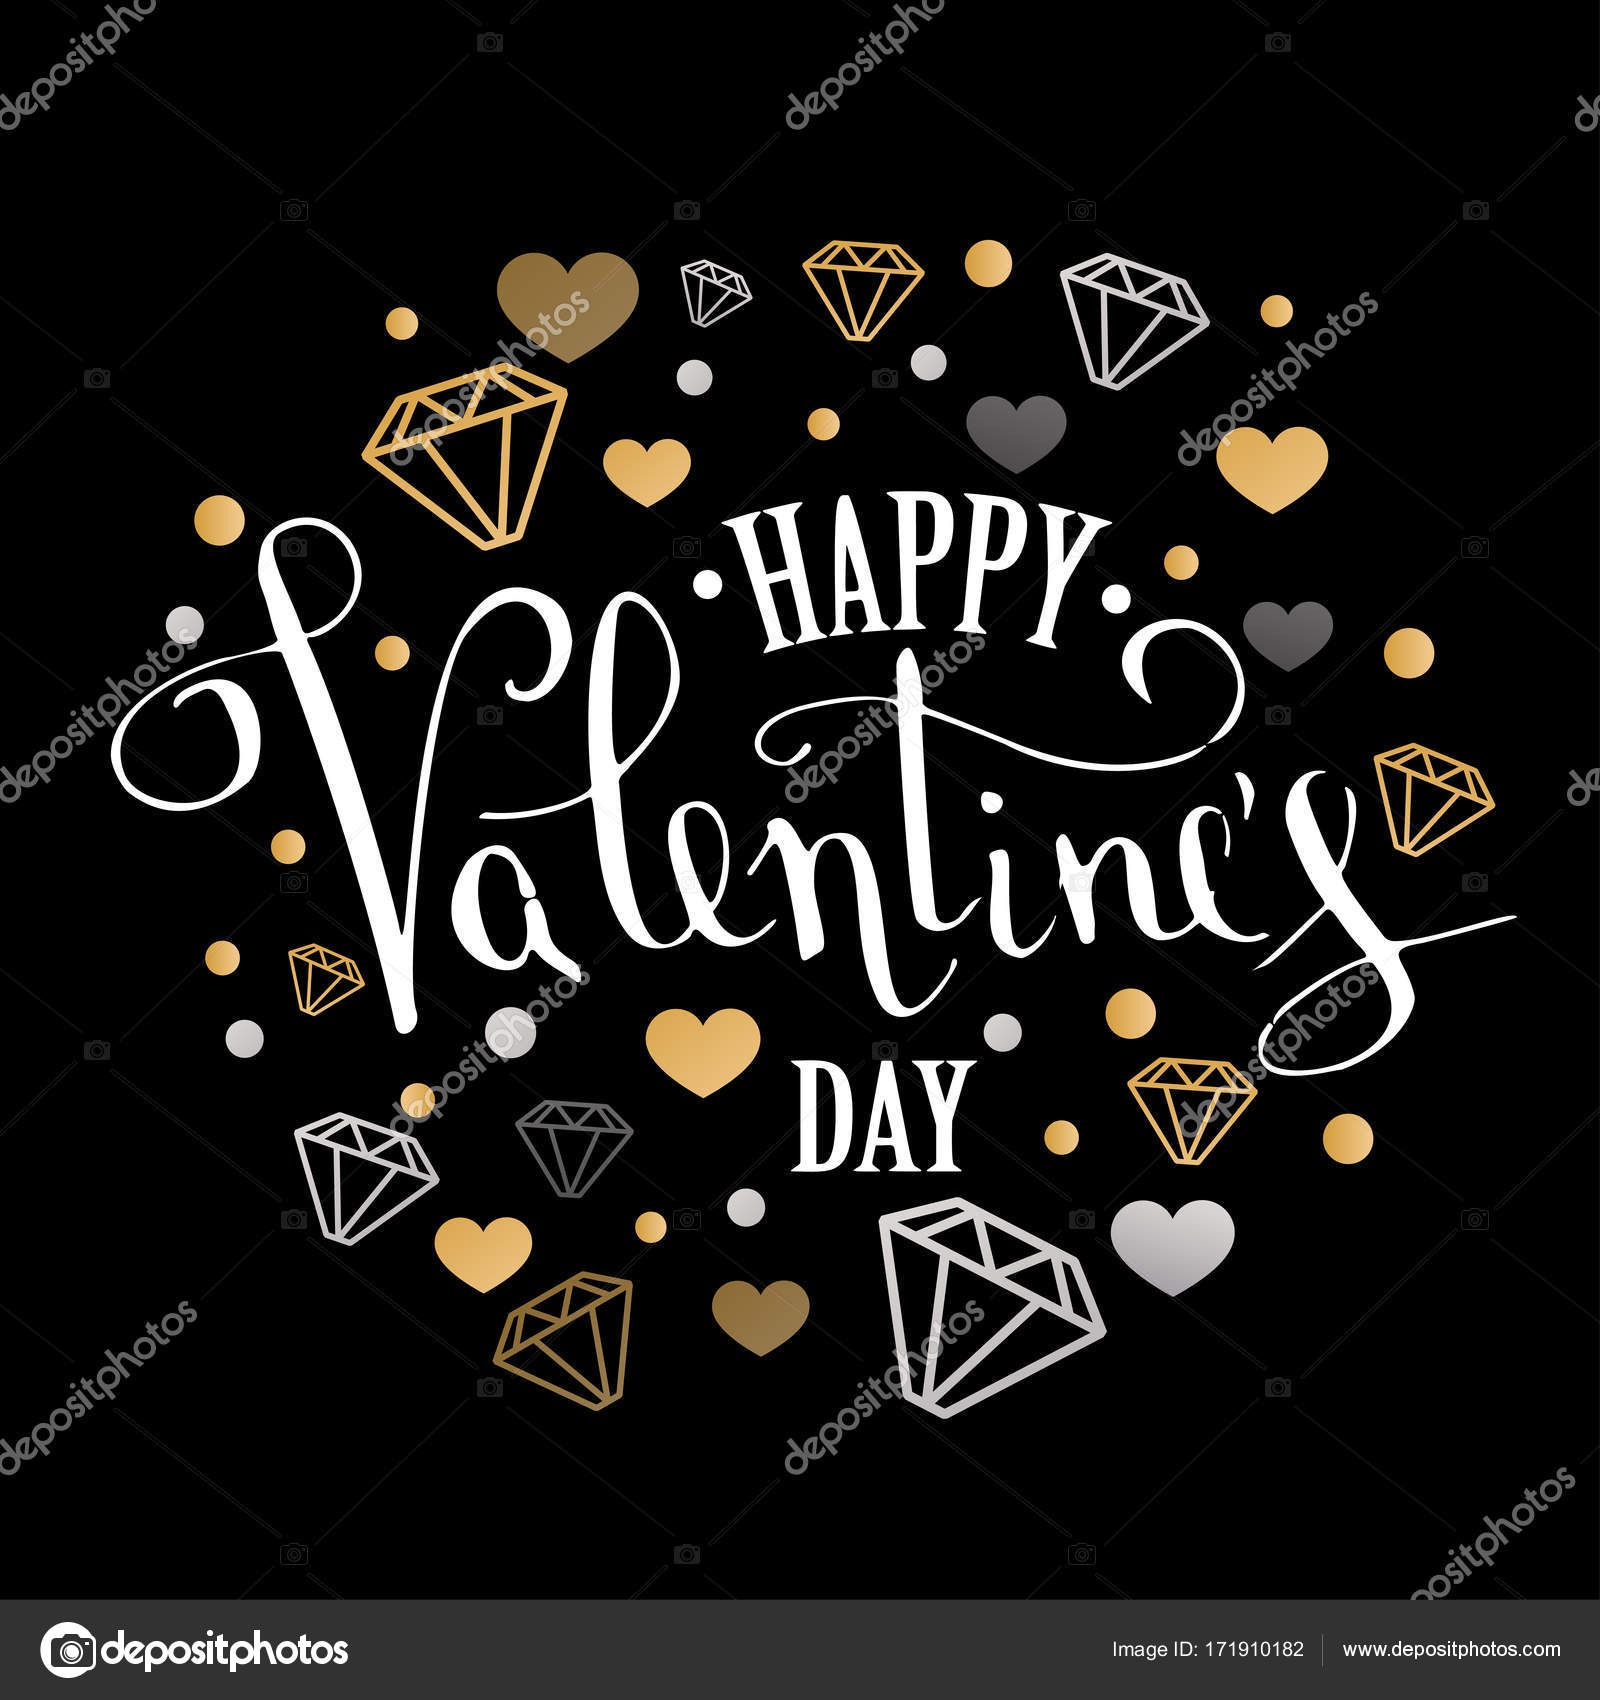 Valentines day greeting card with geometric form diamond valentines day greeting card with geometric form diamond calligraphic pen inscription on a black background kristyandbryce Images